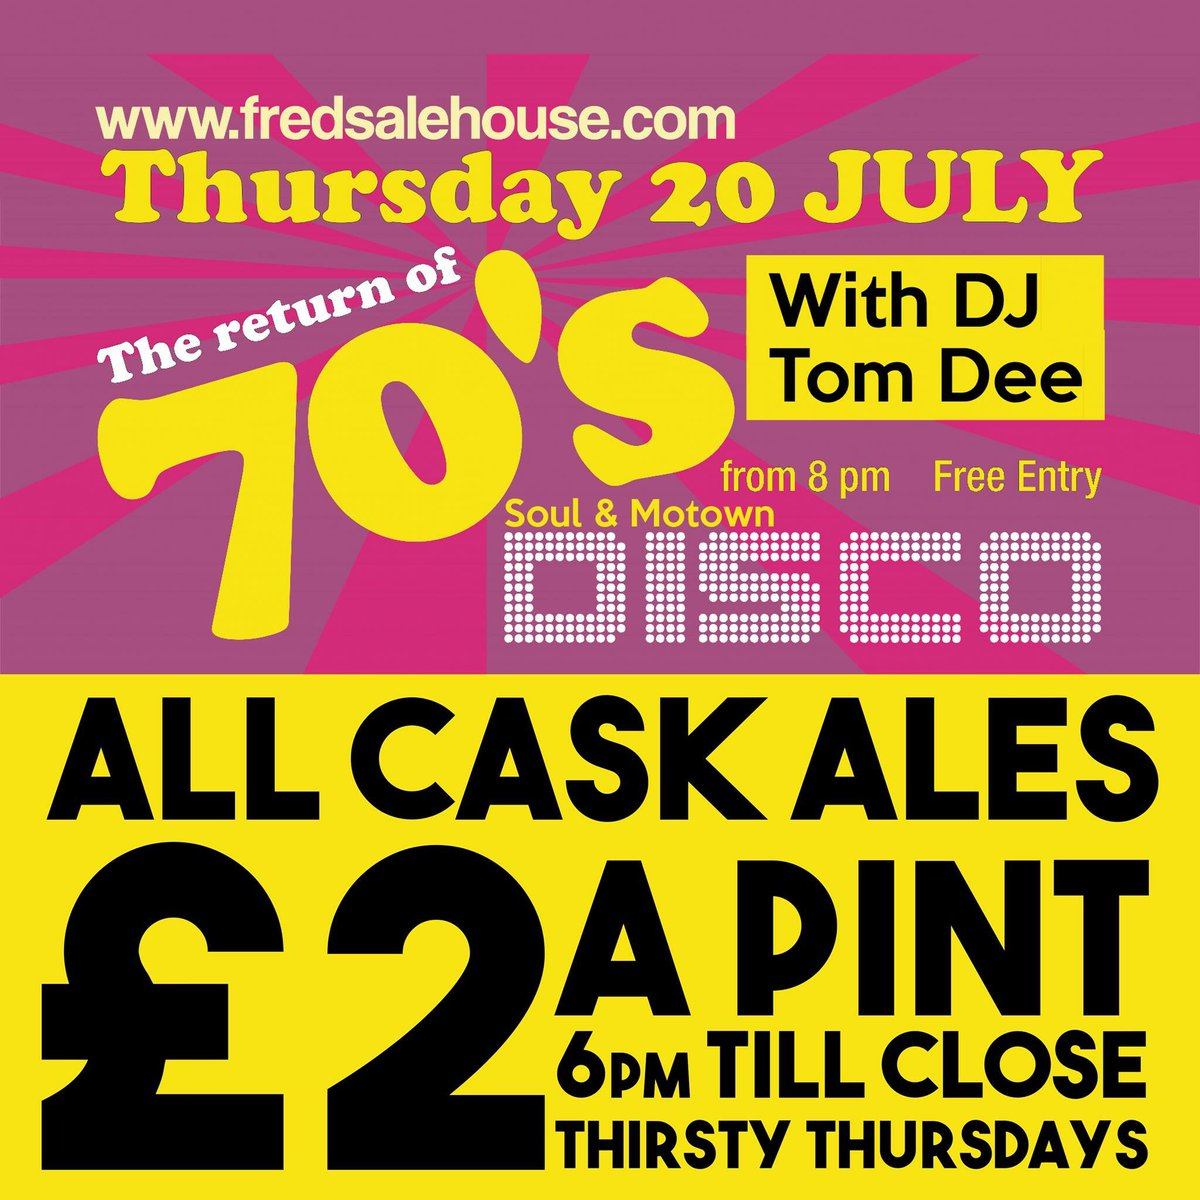 Every Thursday in July &amp; Aug its #70s #Motown #Soul Disco with Tom Dee in secret basement @LevFred #RealAle #Cider just £2 a pint<br>http://pic.twitter.com/PgcKOiFvMh